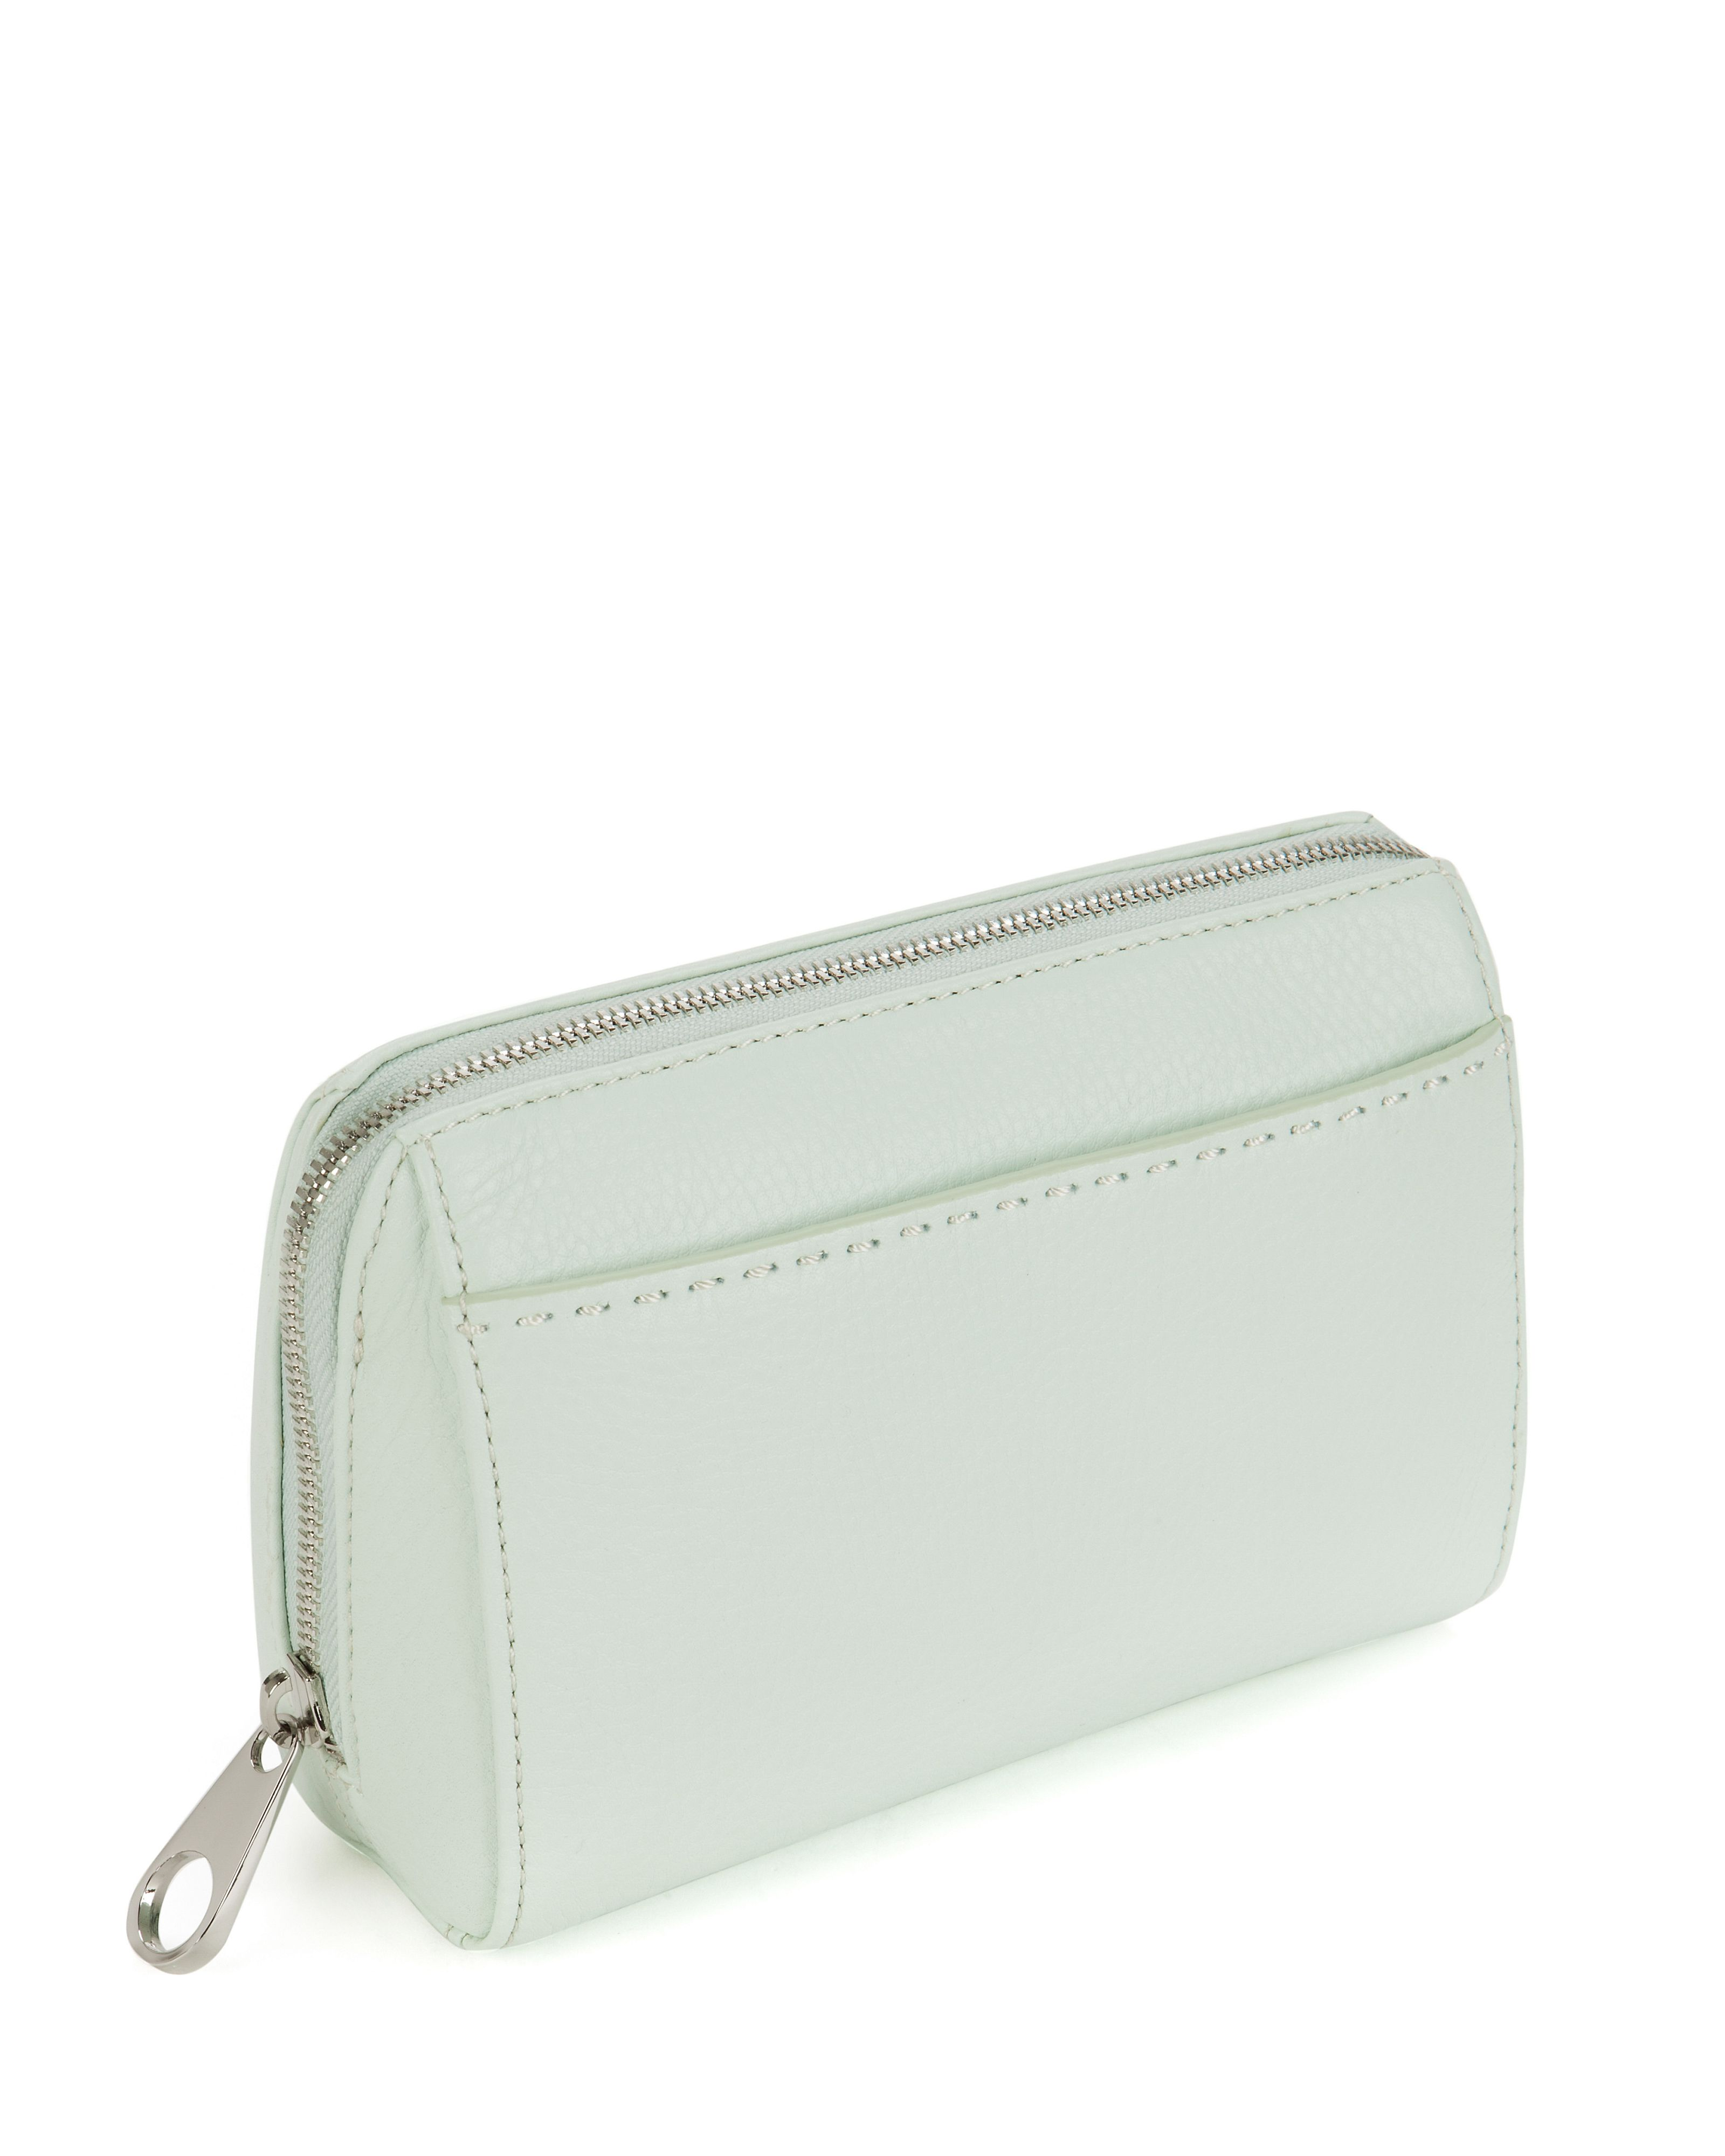 Edna leather wash bag